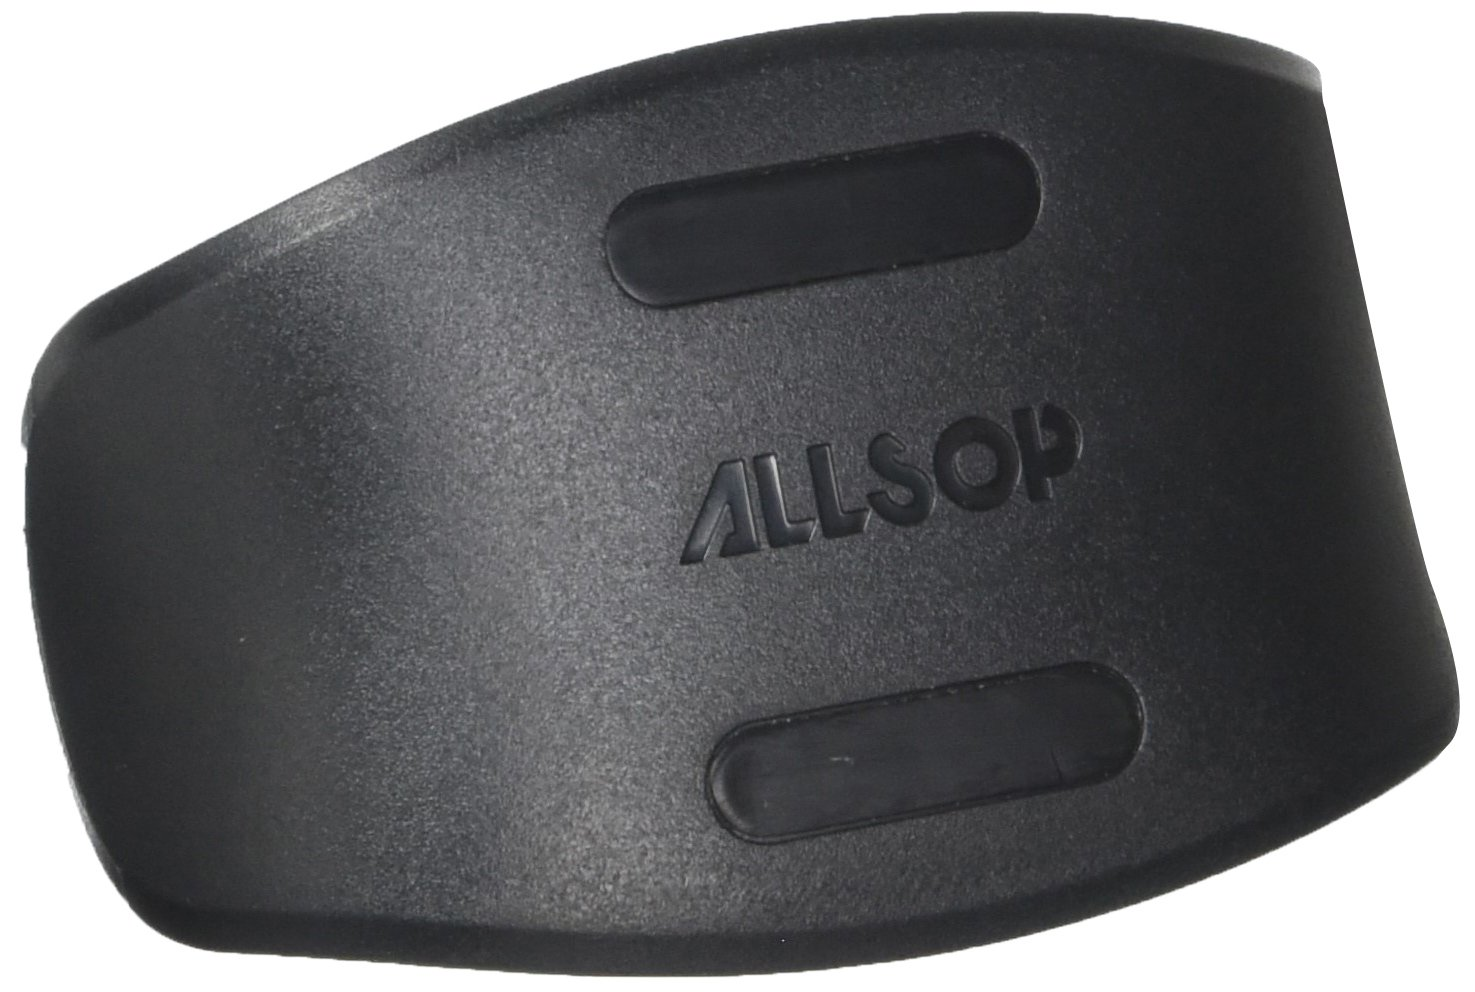 Allsop 29538 Ergo Wrist Assist a05933 Desk Accessories